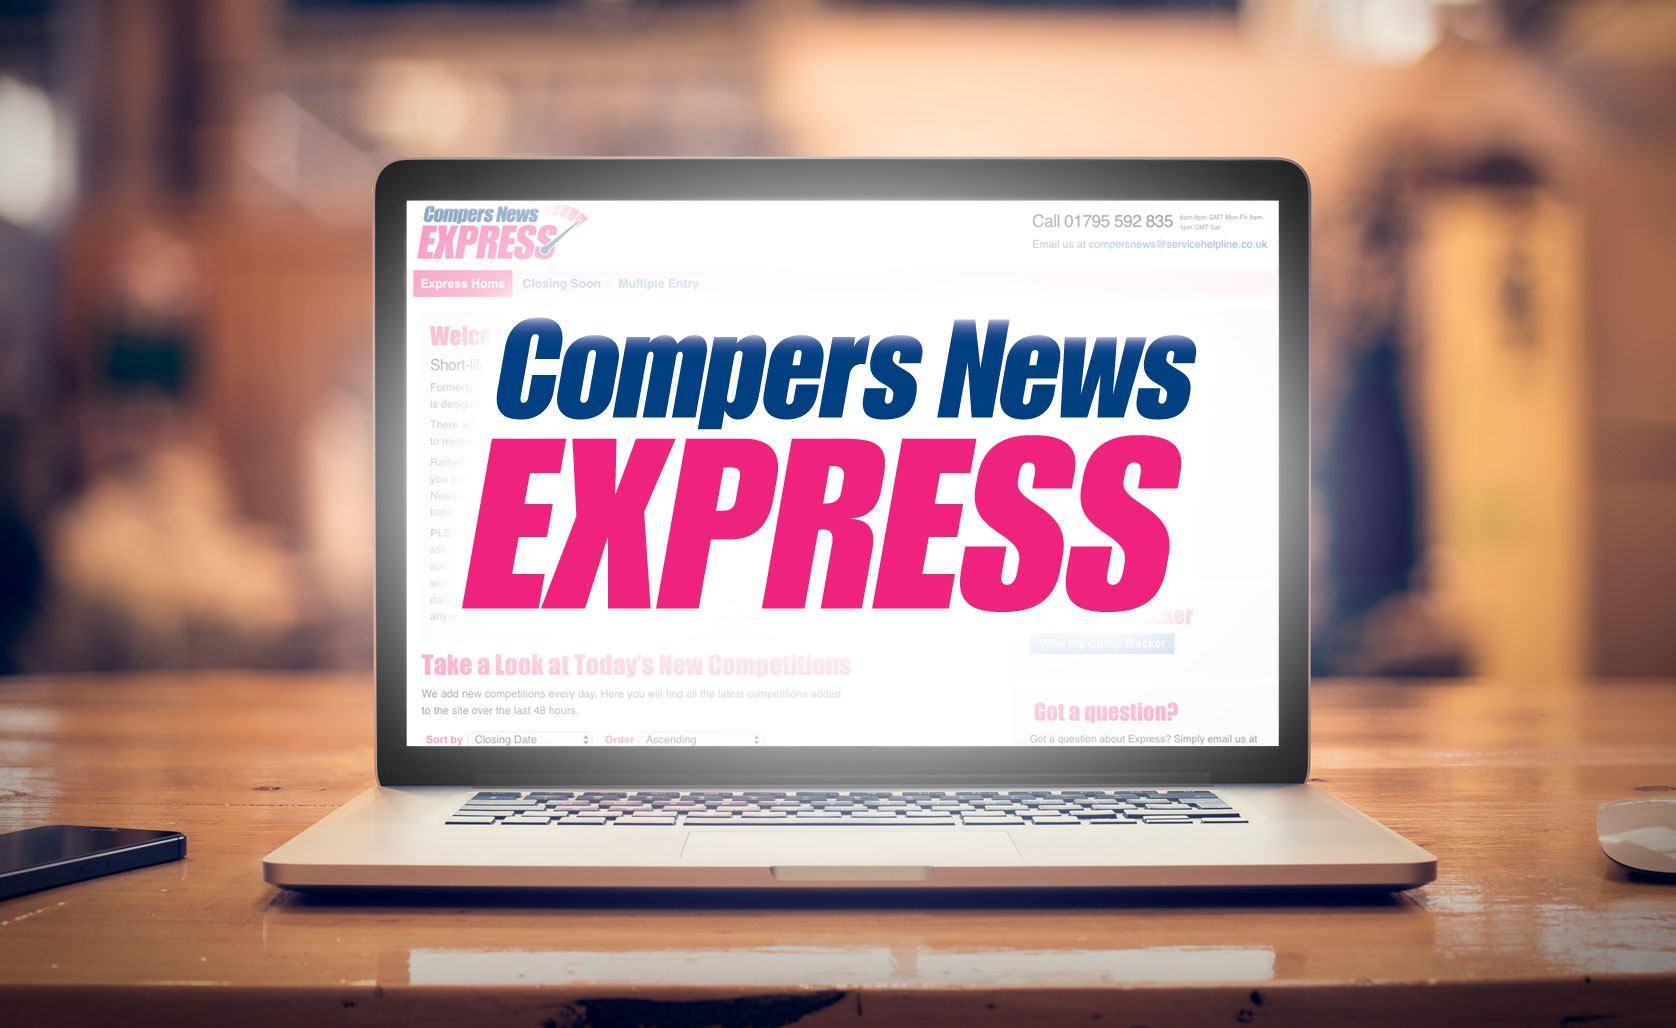 compers news express brand image